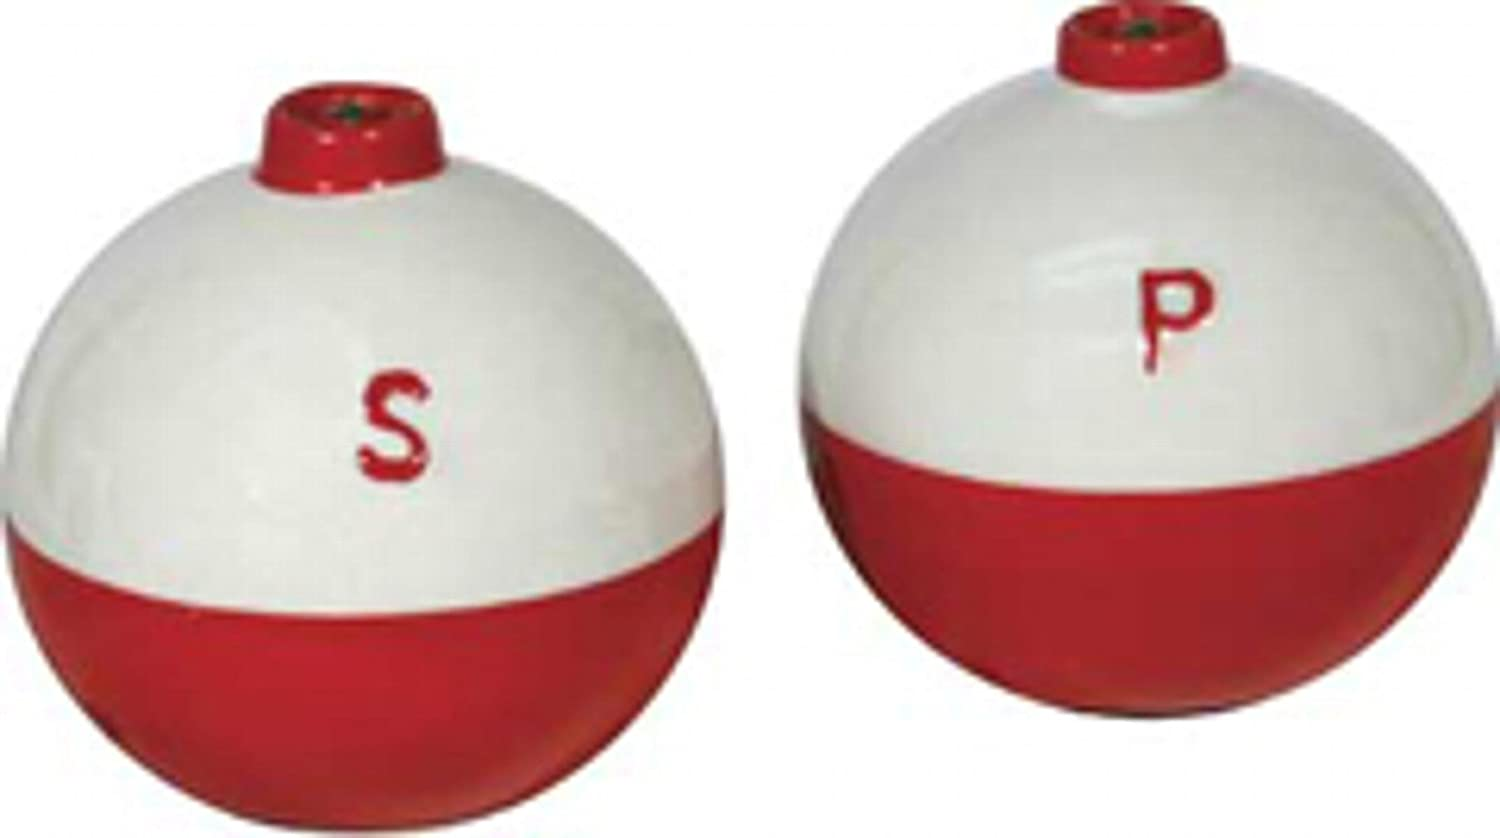 Rivers Edge 519 Ceramic Fishing Bobber Shaped Salt and Pepper Shakers Rivers Edge Products